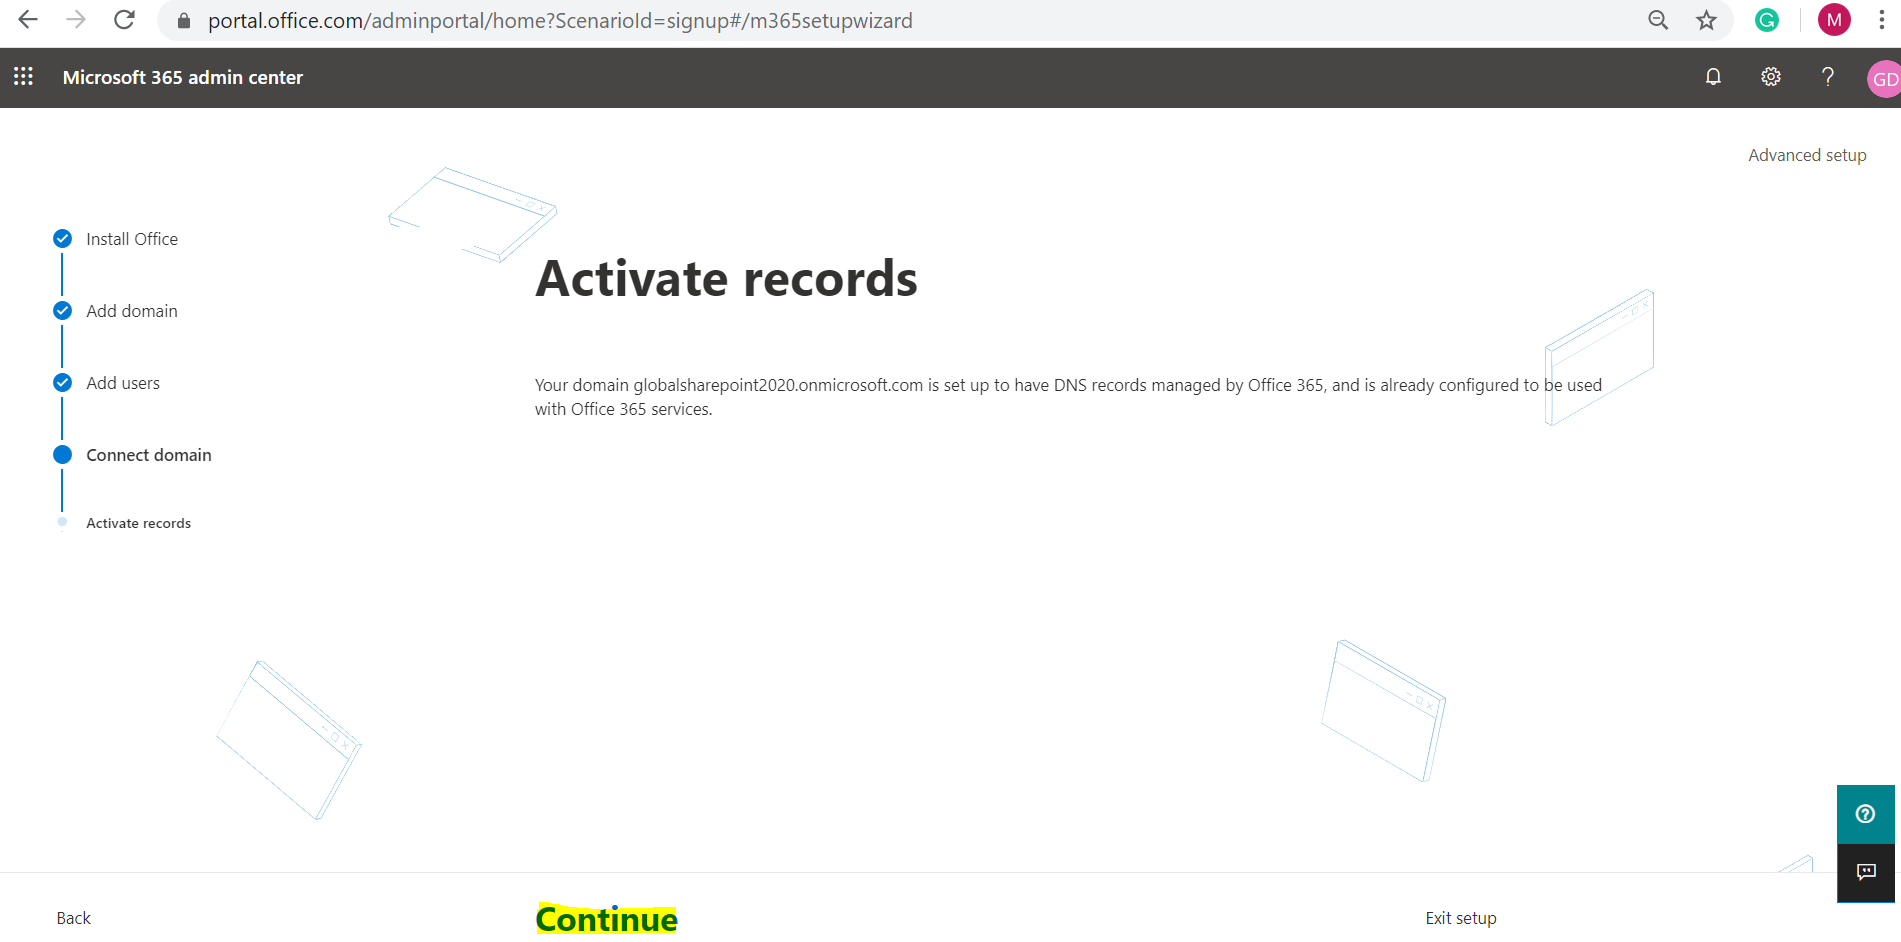 Office 365 E3 Trial - Microsoft 365 admin center home page - Activate Records